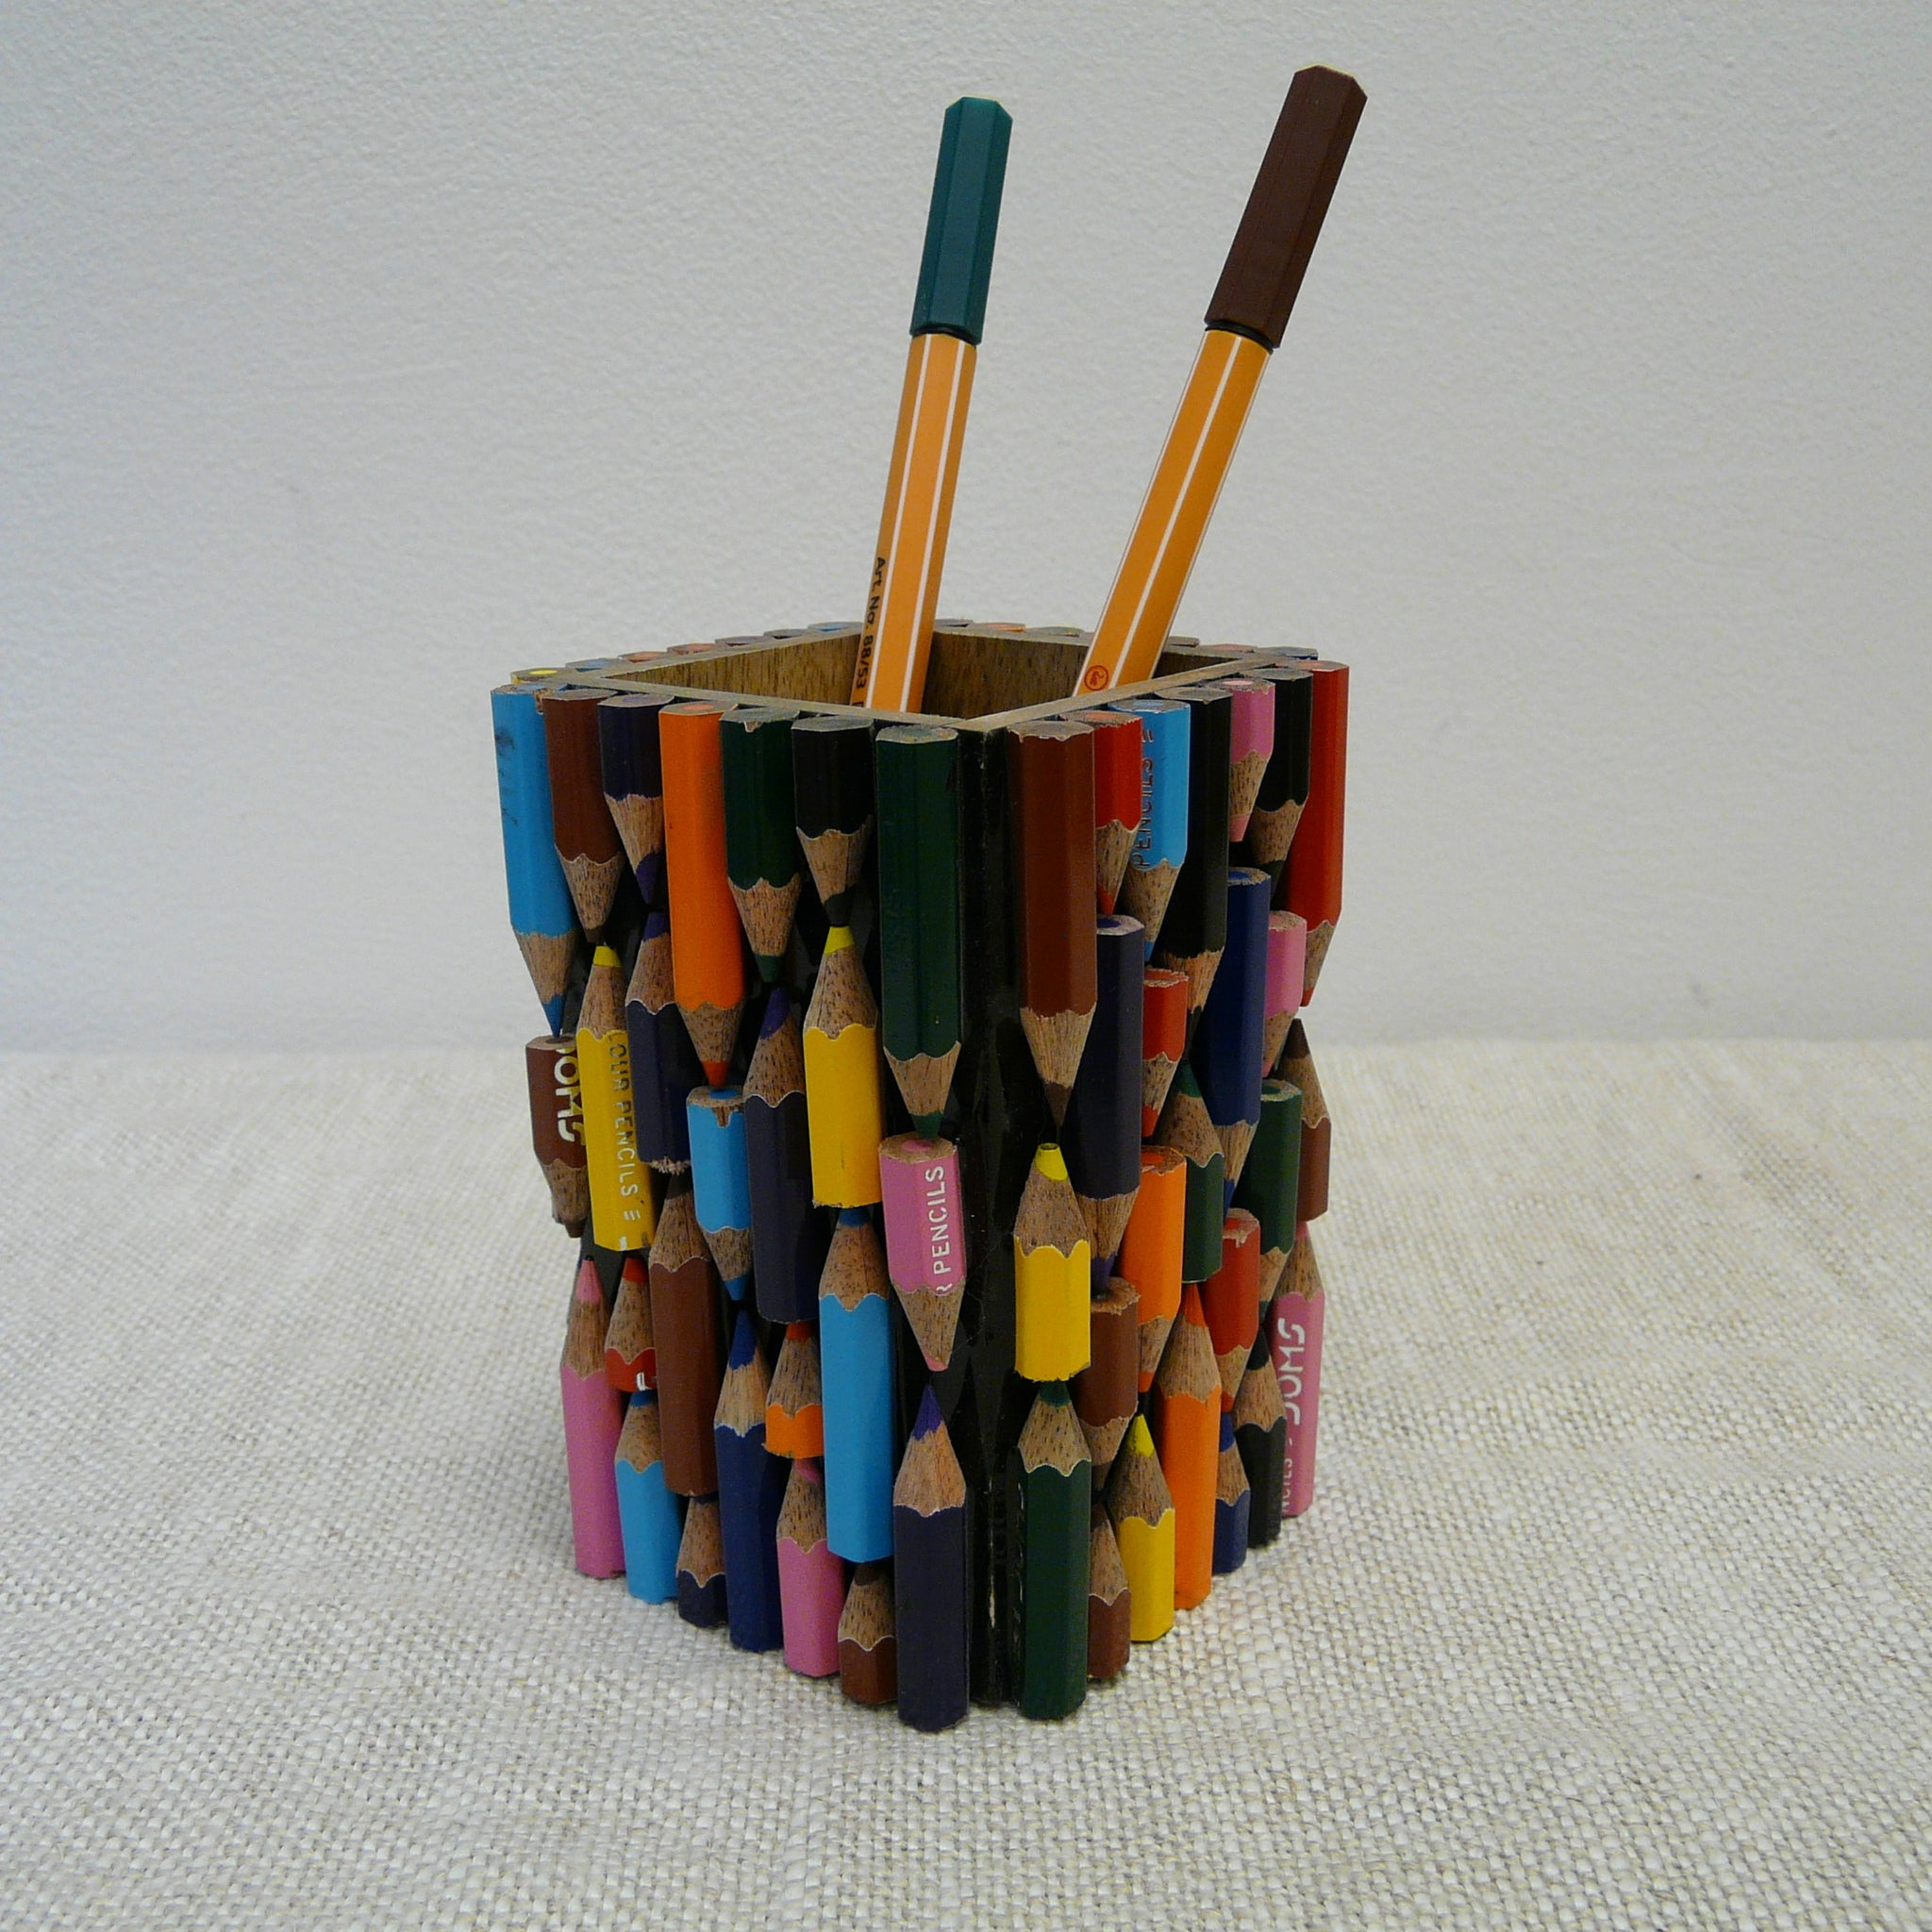 P1110132-Fair-Trade-Upcycled-Crayons-Pen-pot-with-pens